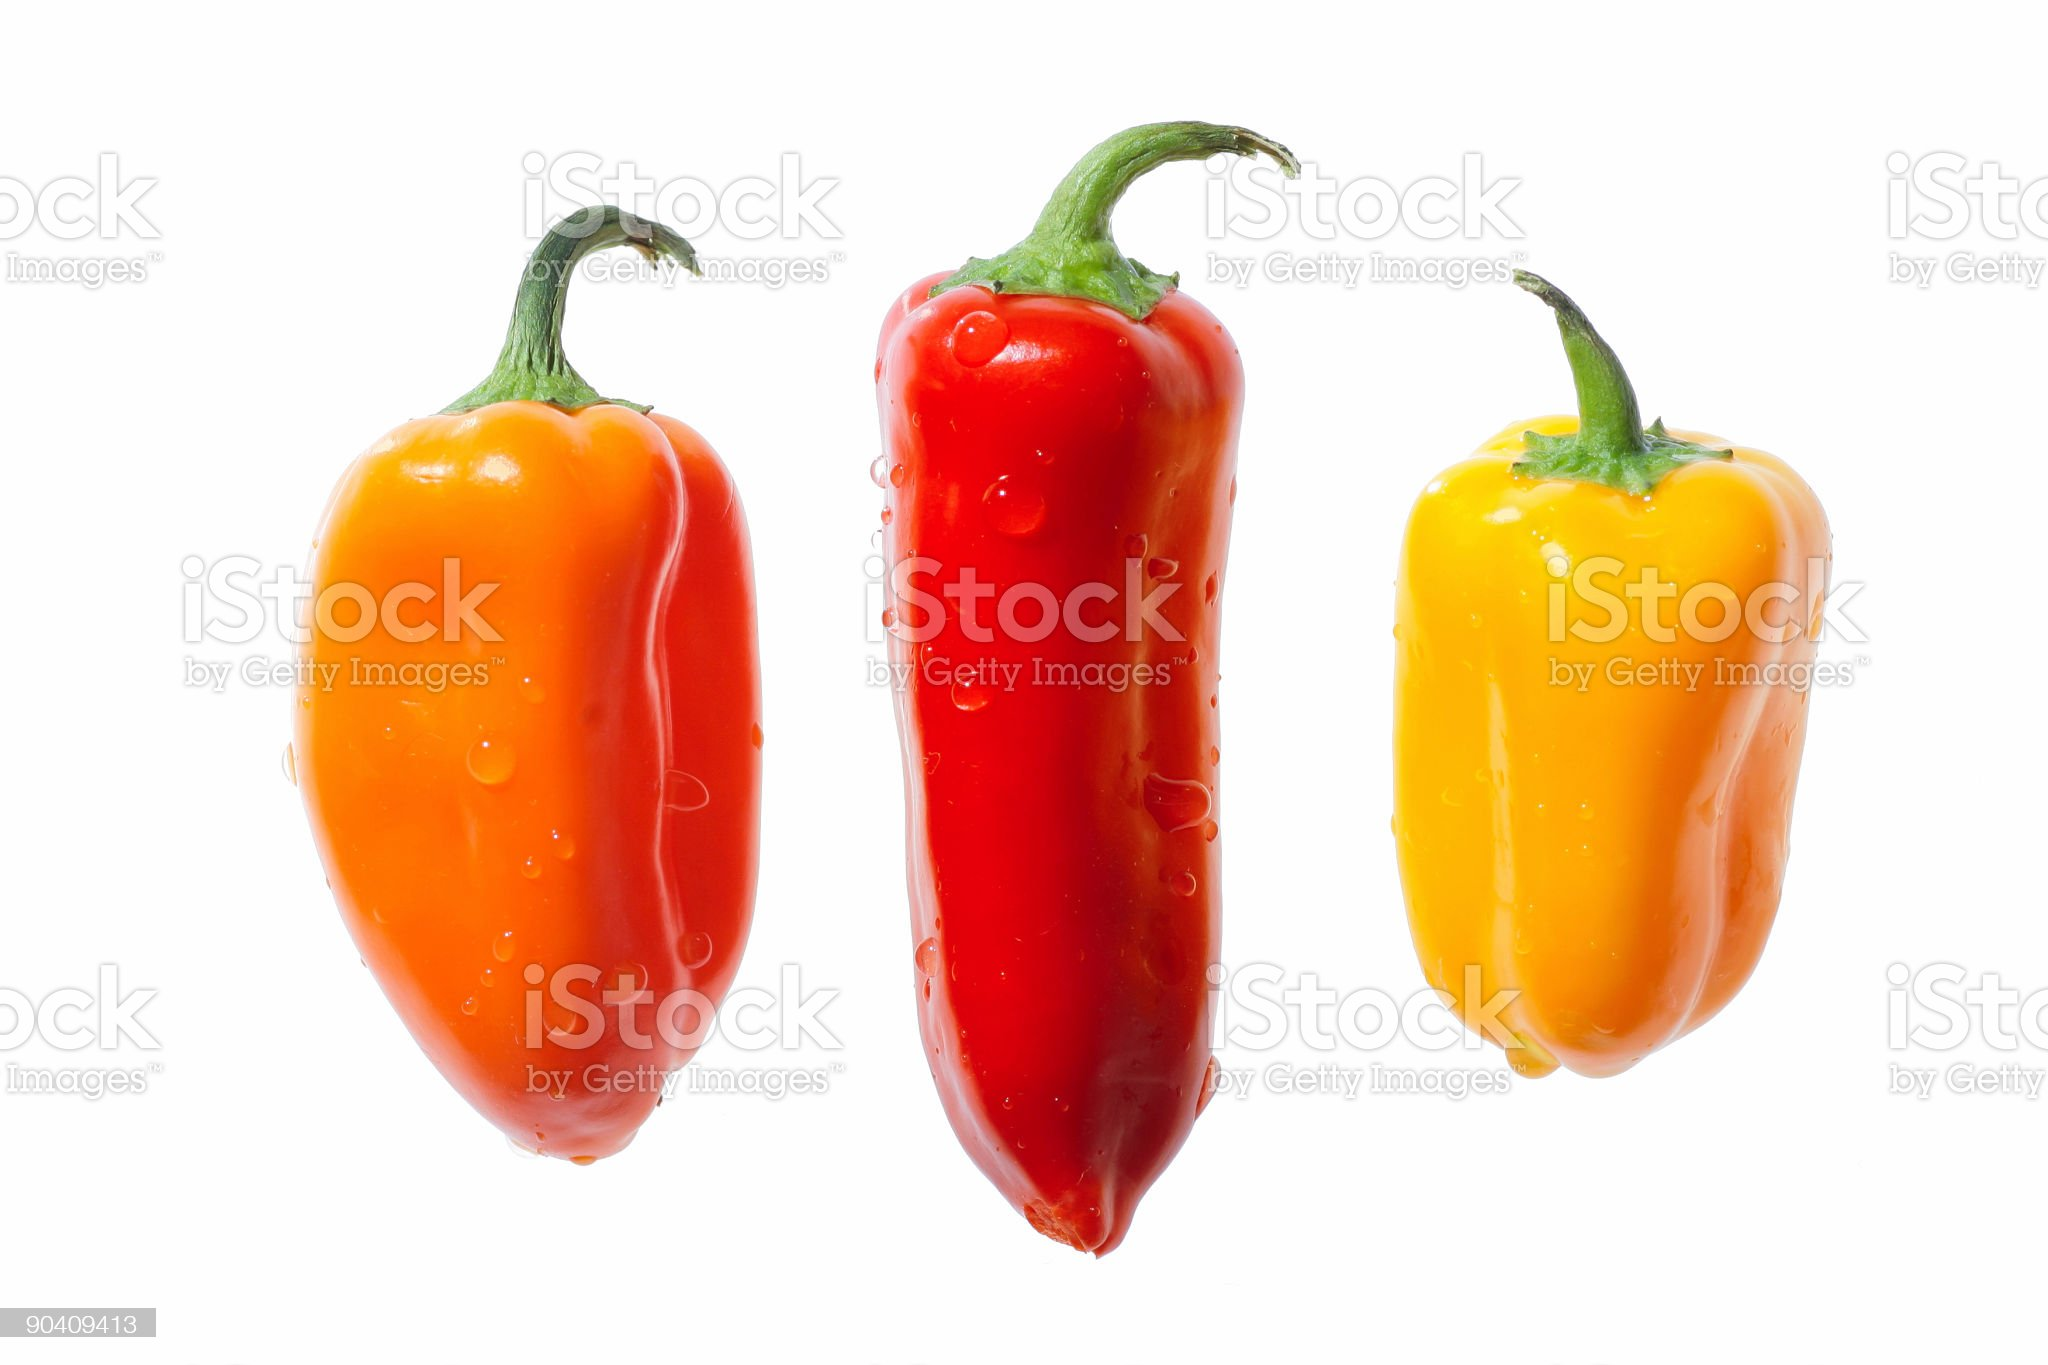 Three Sweet Peppers Isolated On White royalty-free stock photo